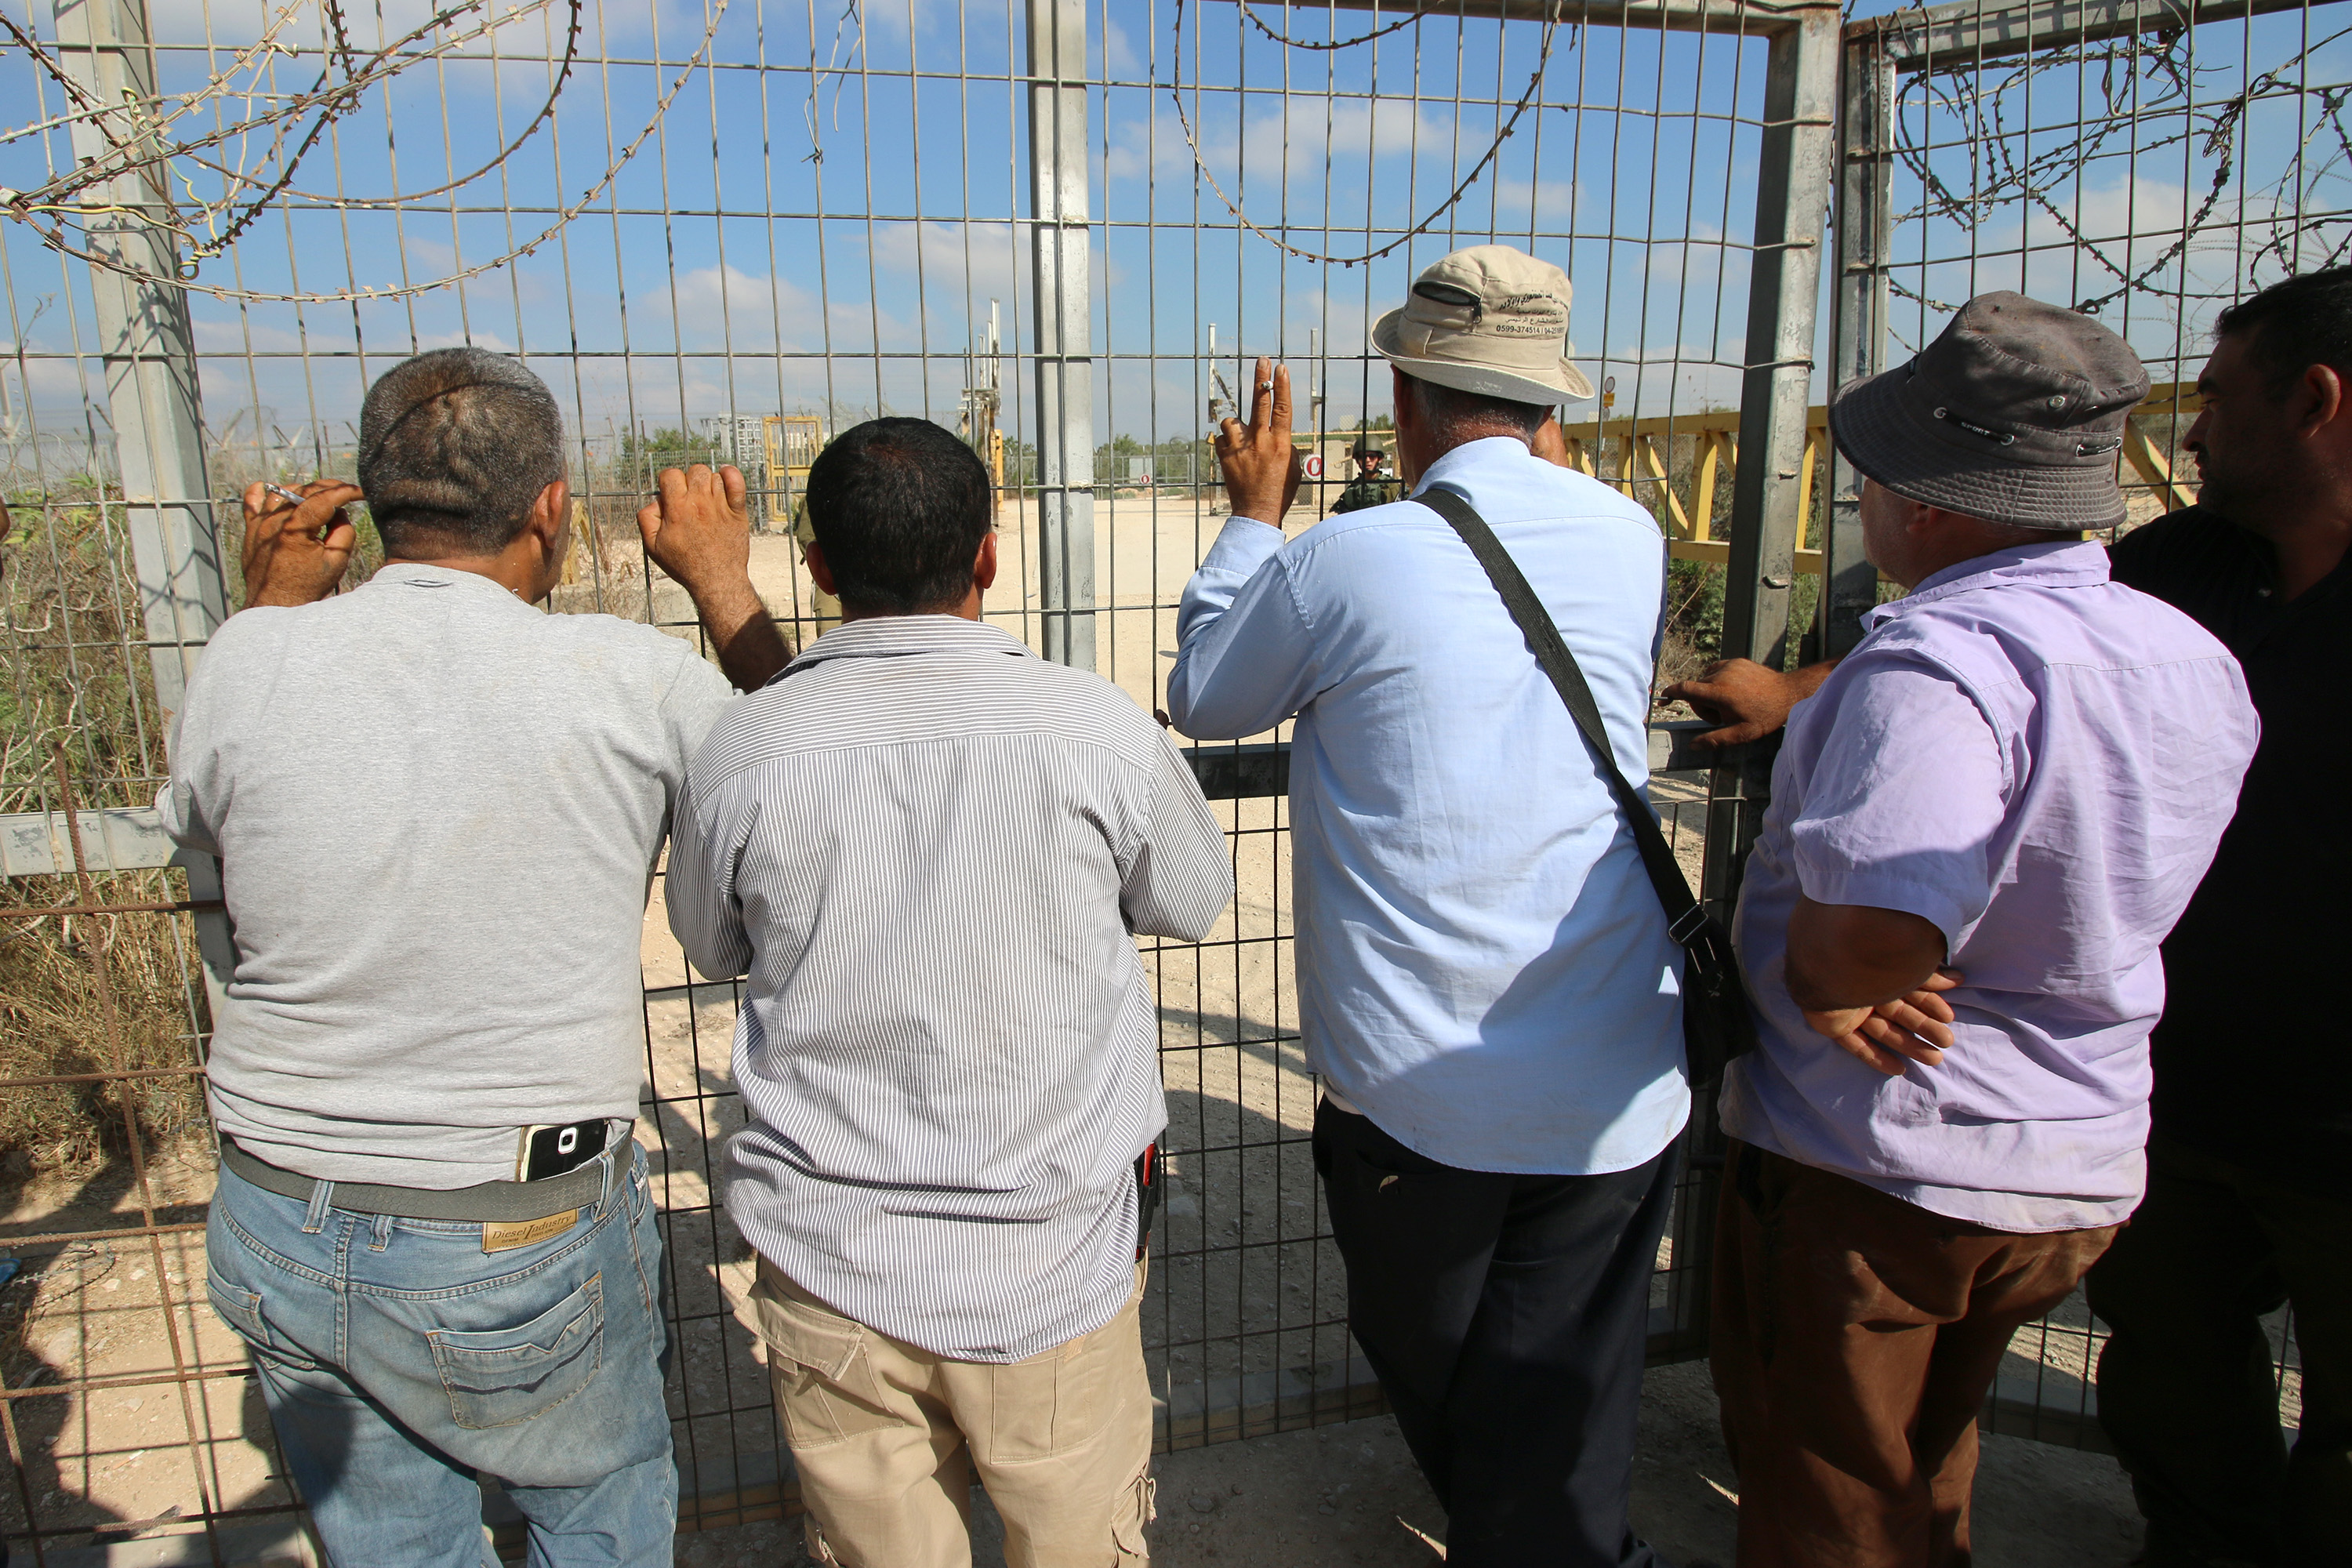 Palestinian farmers protest at a military gate in the northern West Bank, demanding the Israeli army ease restrictions to allow them to more easily enter and exit, Deir Al Ghusun, July 9, 2017. (Ahmad al-Bazz/Activestills.org)